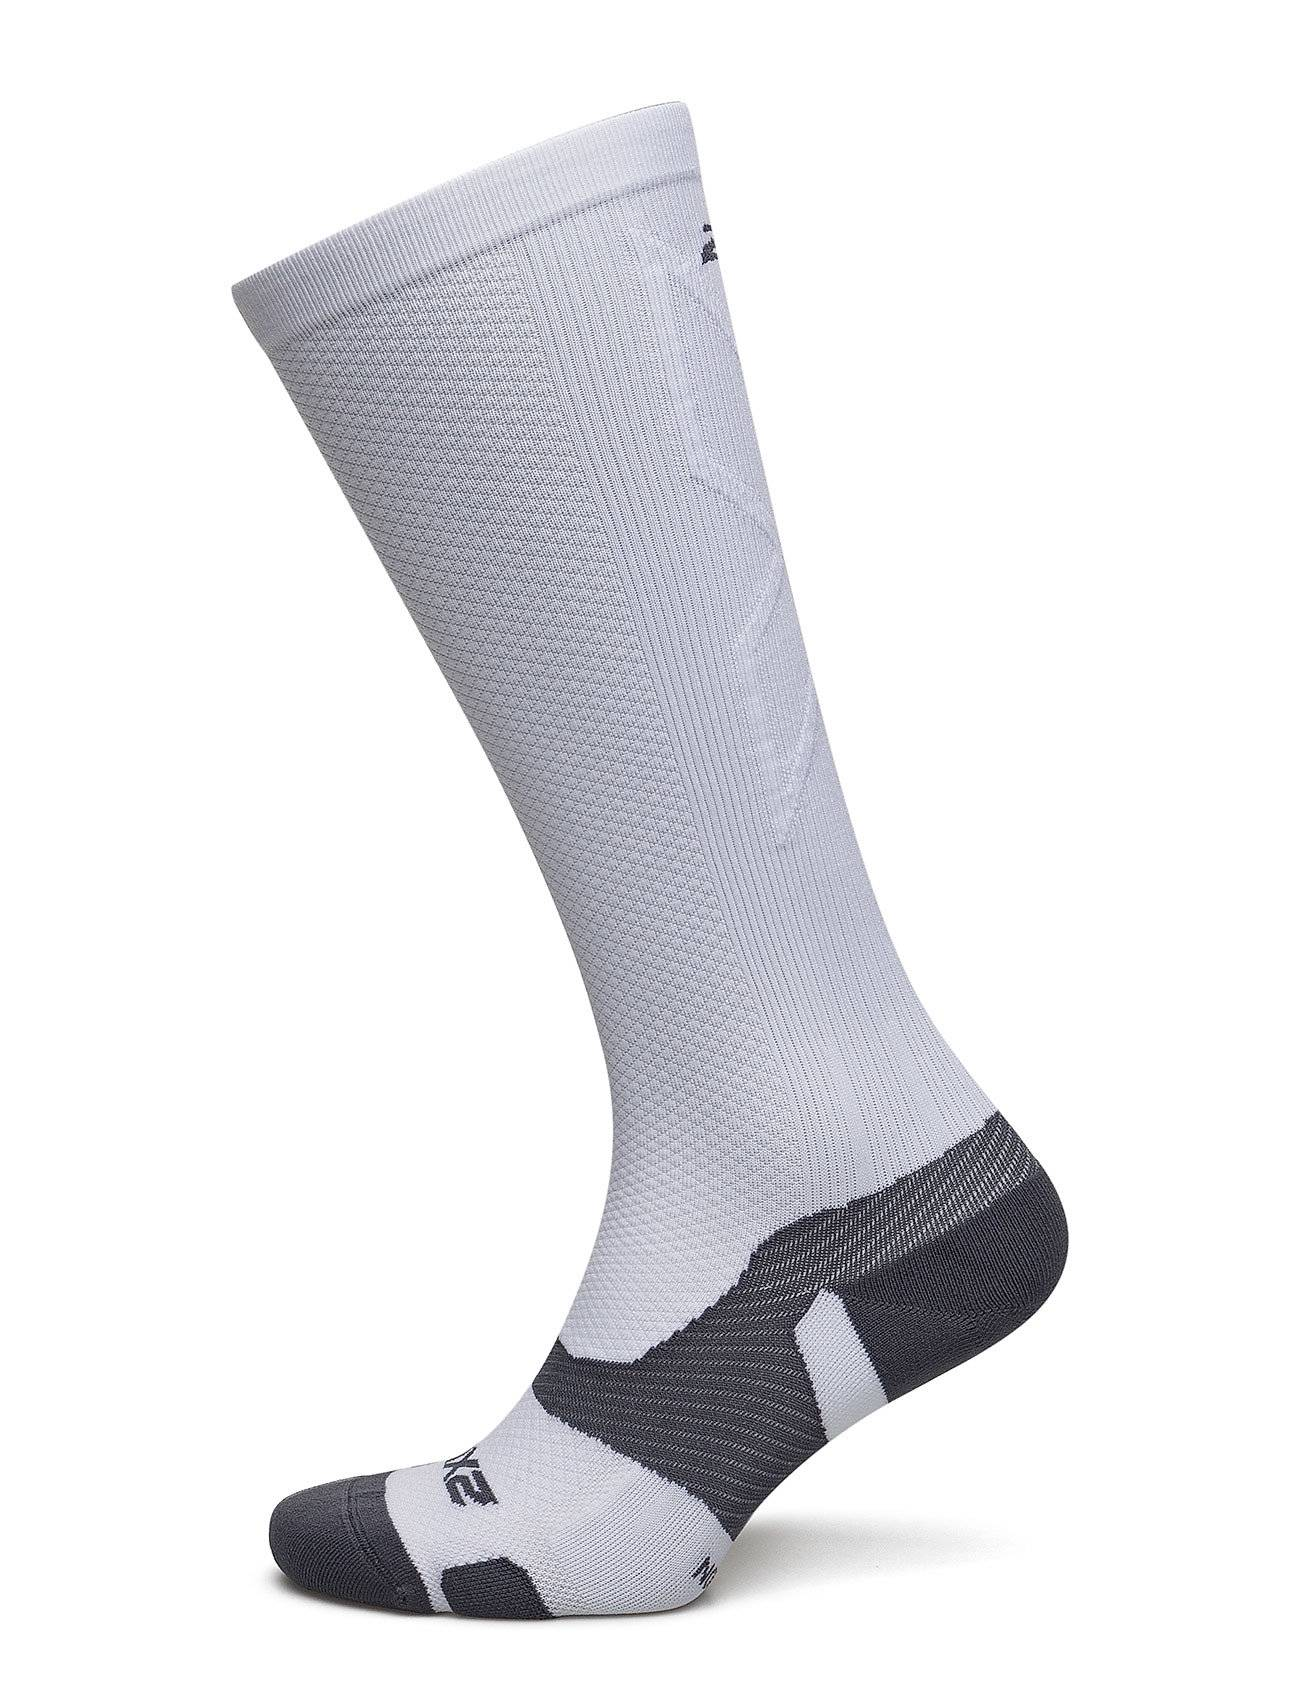 2XU Vectr Lightcushionfulllengthsocks